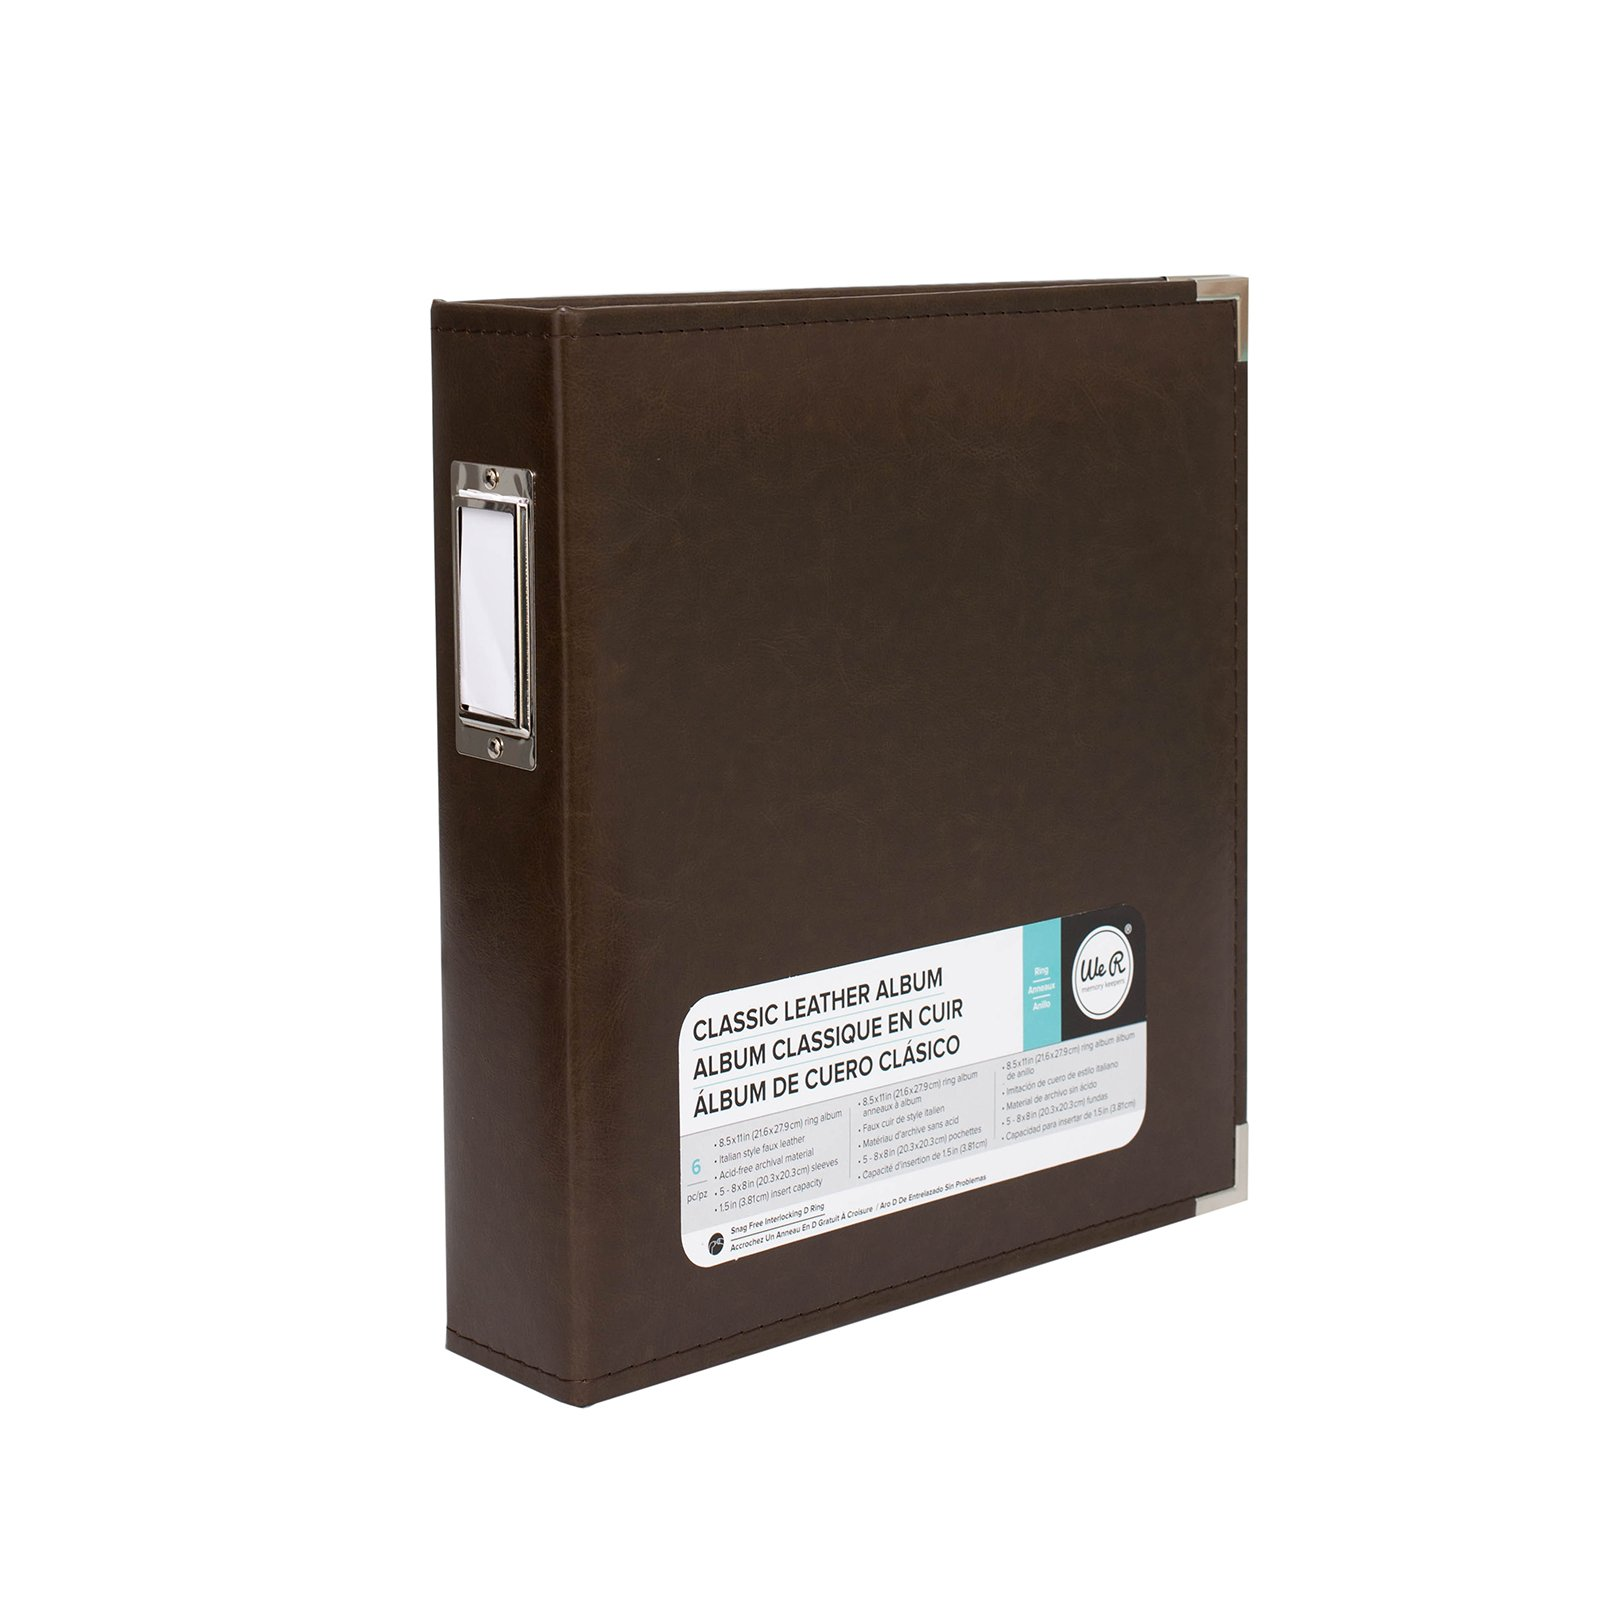 8.5 x 11-inch Classic Leather 3-Ring Album by We R Memory Keepers   Dark Chocolate, includes 5 page protectors